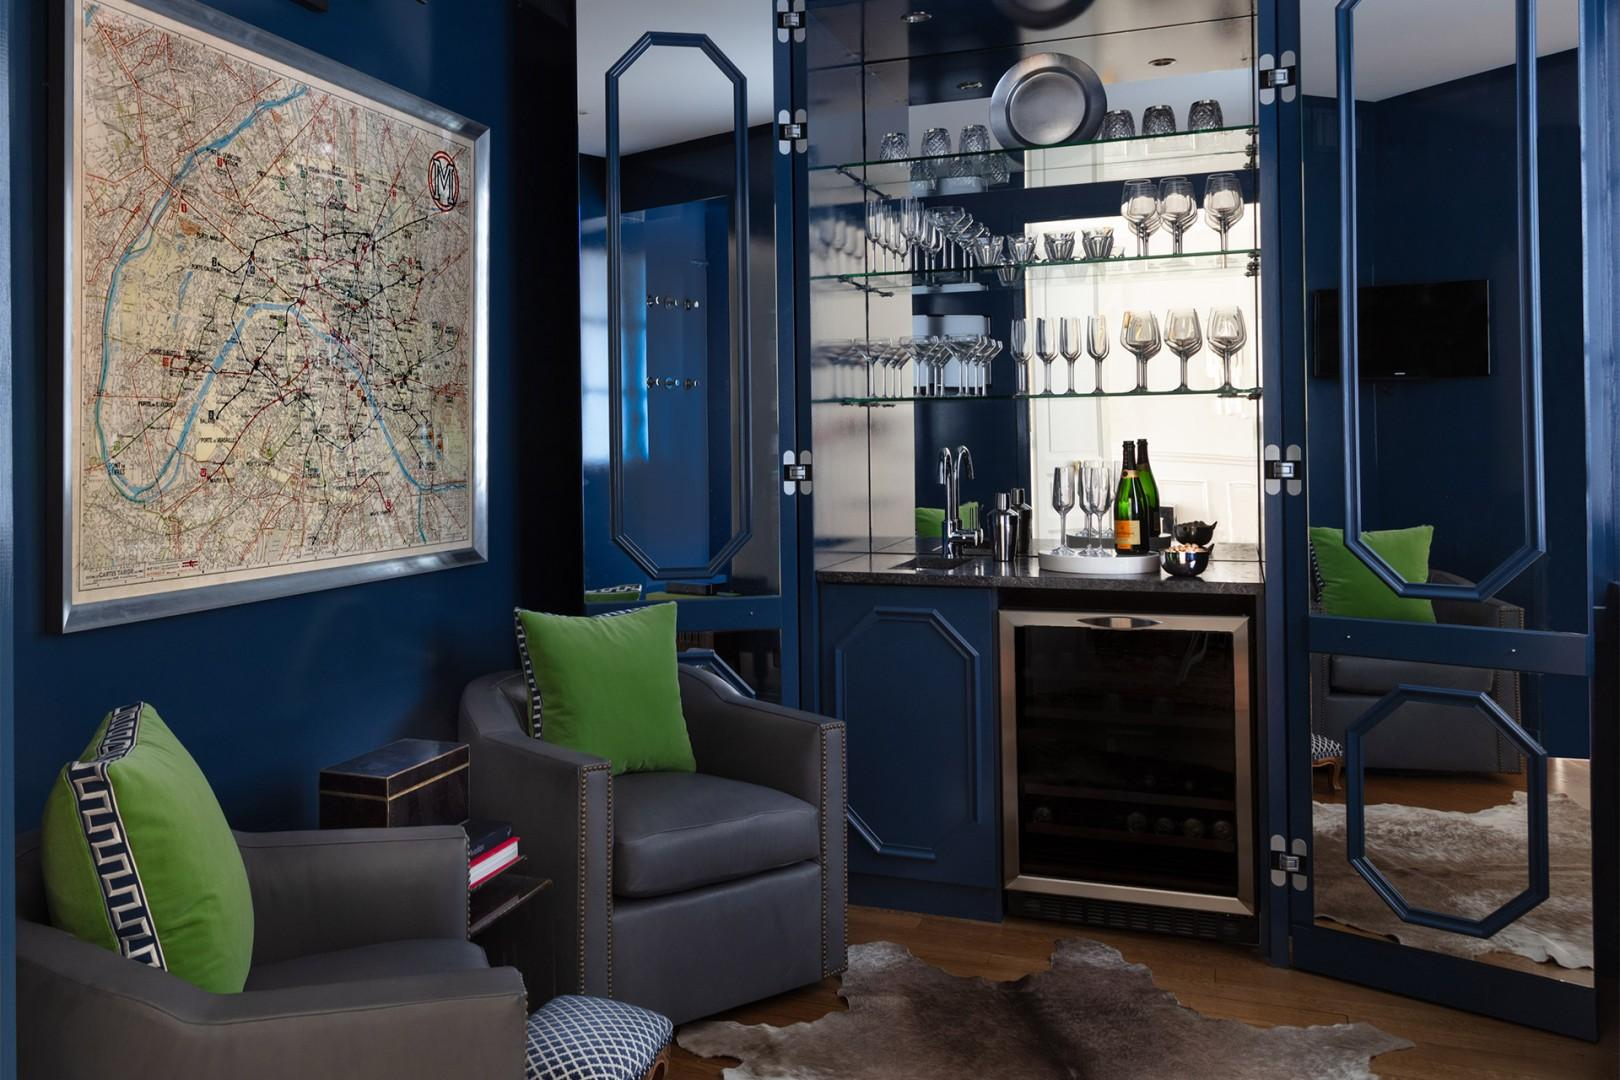 The den with a built-in bar is perfect for entertaining!